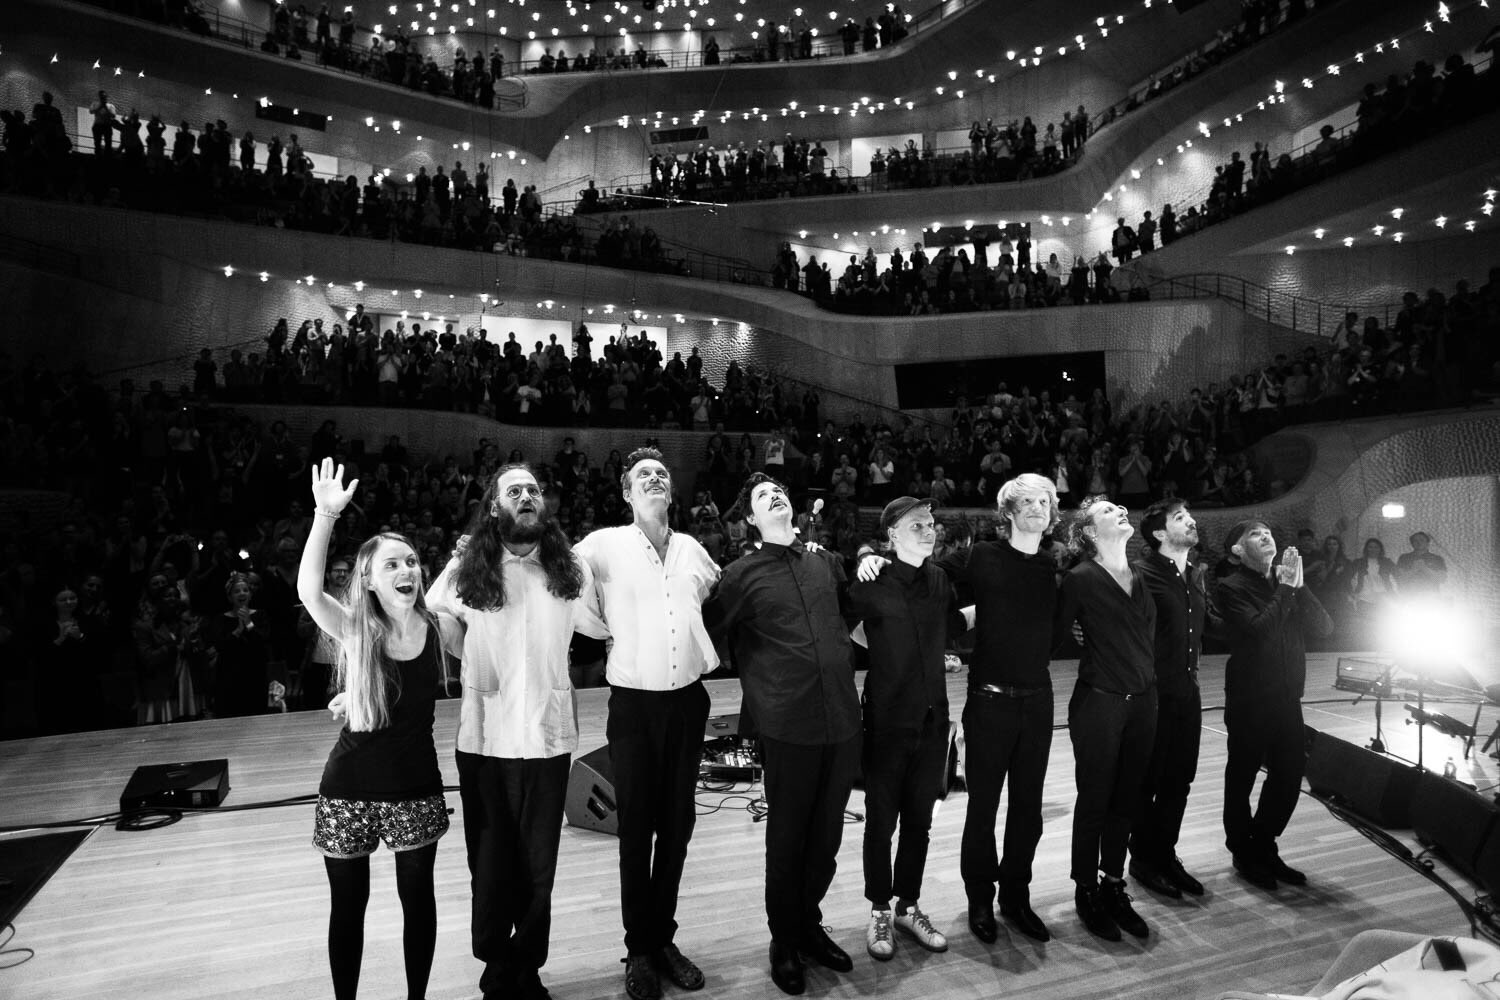 Watch: Efterklang debut new album 'Altid Sammen' live at the iconic Elbphilharmonie concert hall